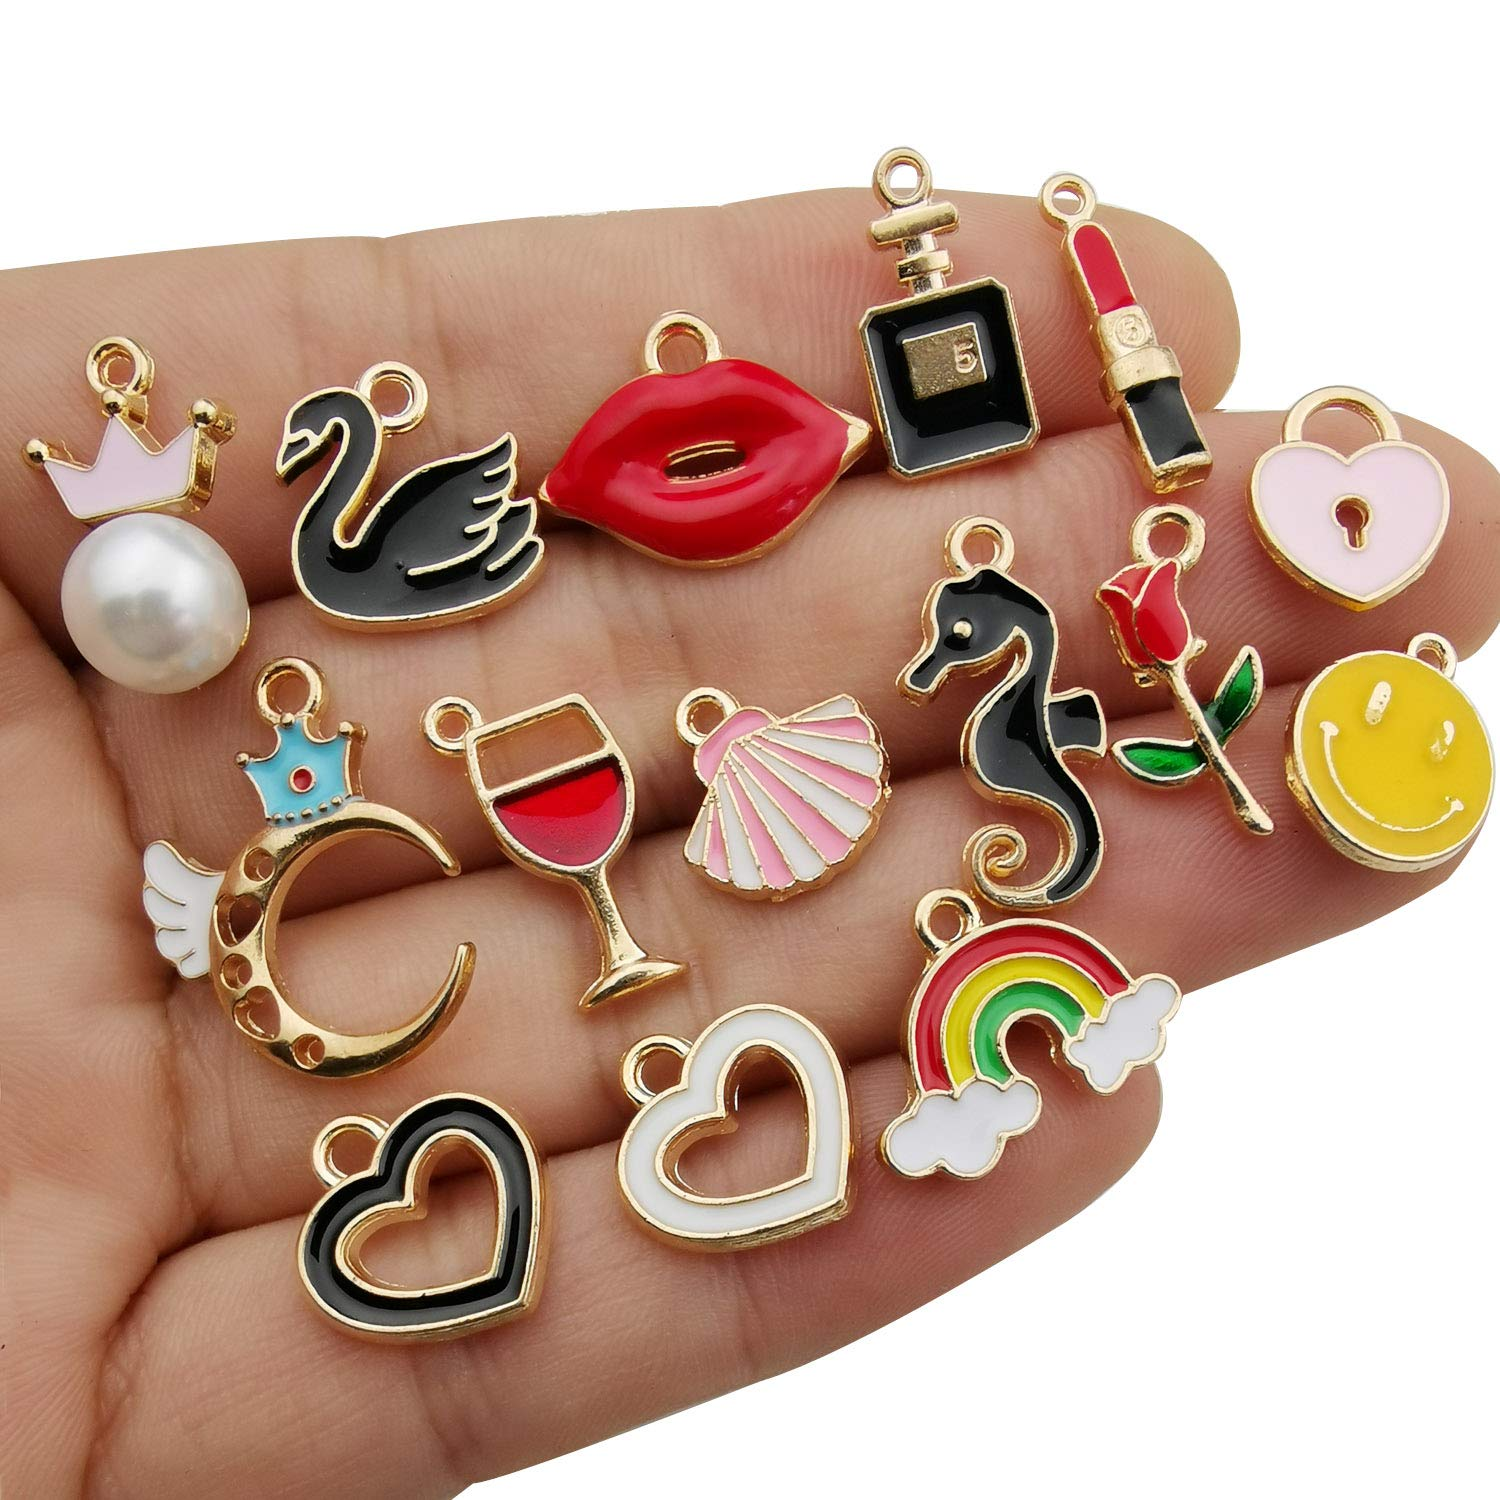 iloveDIYbeads 30pcs Assorted Enamel Gold Plated Animals Fruit Moon Star Dainty Dangle Charm for Jewelry Making Necklace Bracelet Ankle Earring Jewelry DIY Findings M300